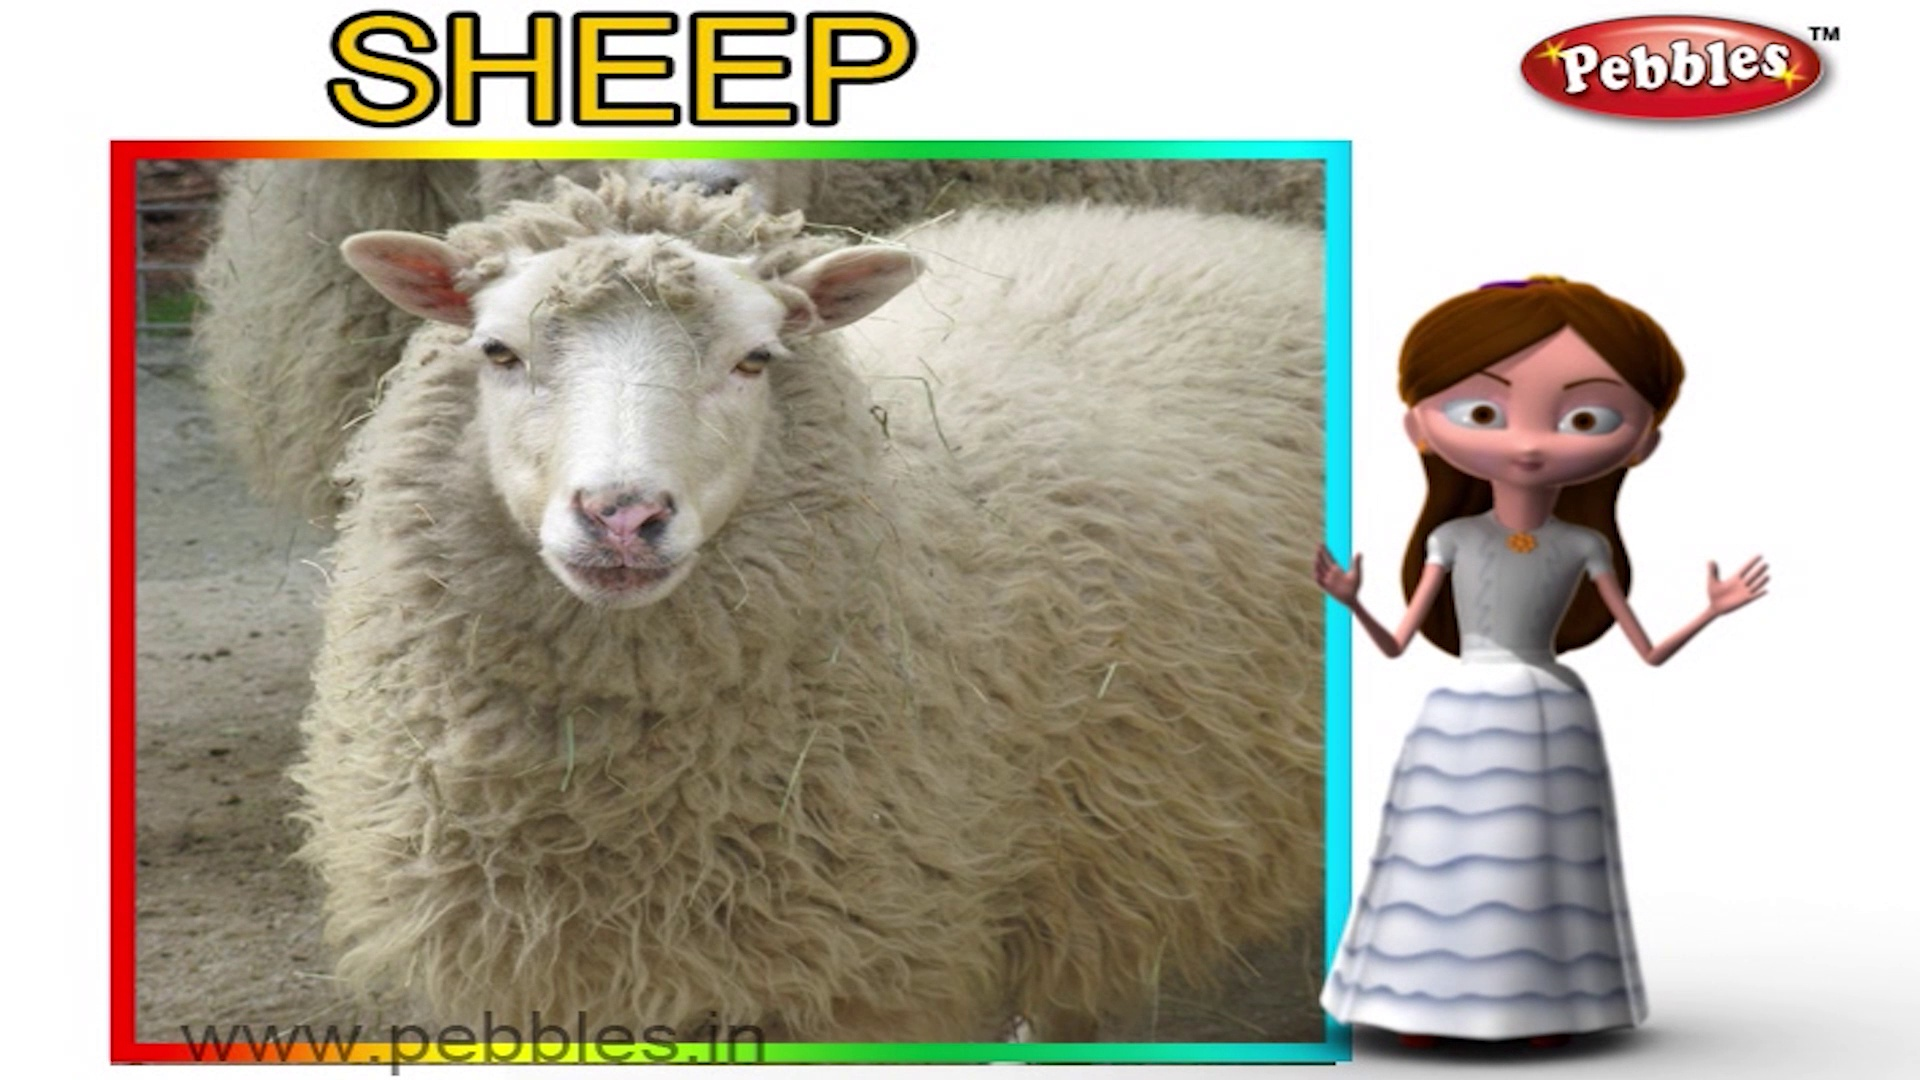 Sheep | 3D animated nursery rhymes for kids with lyrics | popular animals rhyme for kids | Sheep song | Animal songs | Funny rhymes for kids | cartoon | 3D animation | Top rhymes of animals for children